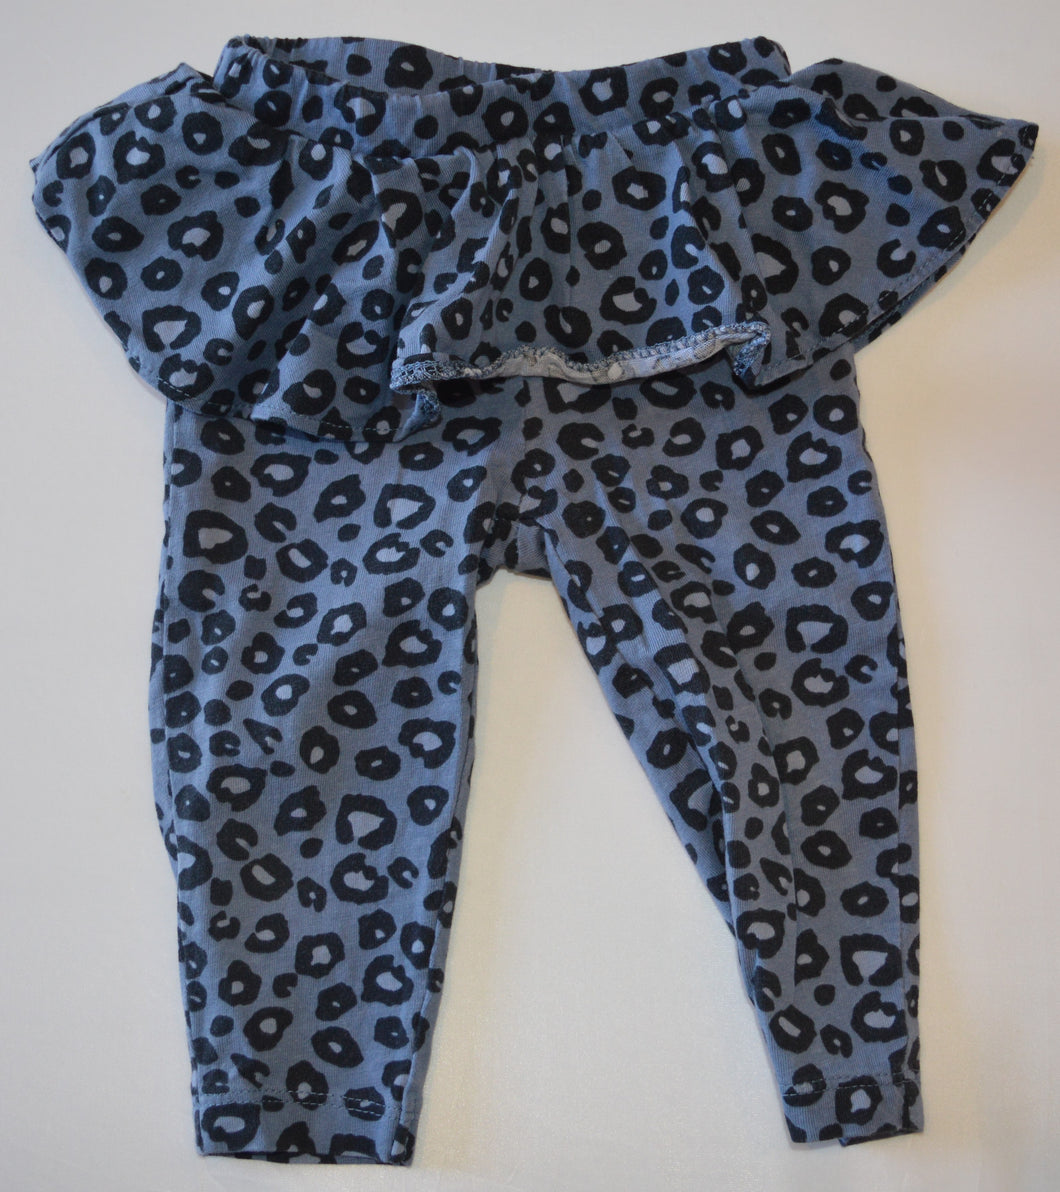 Carter's Blue Leopard Print Leggings with Skirt